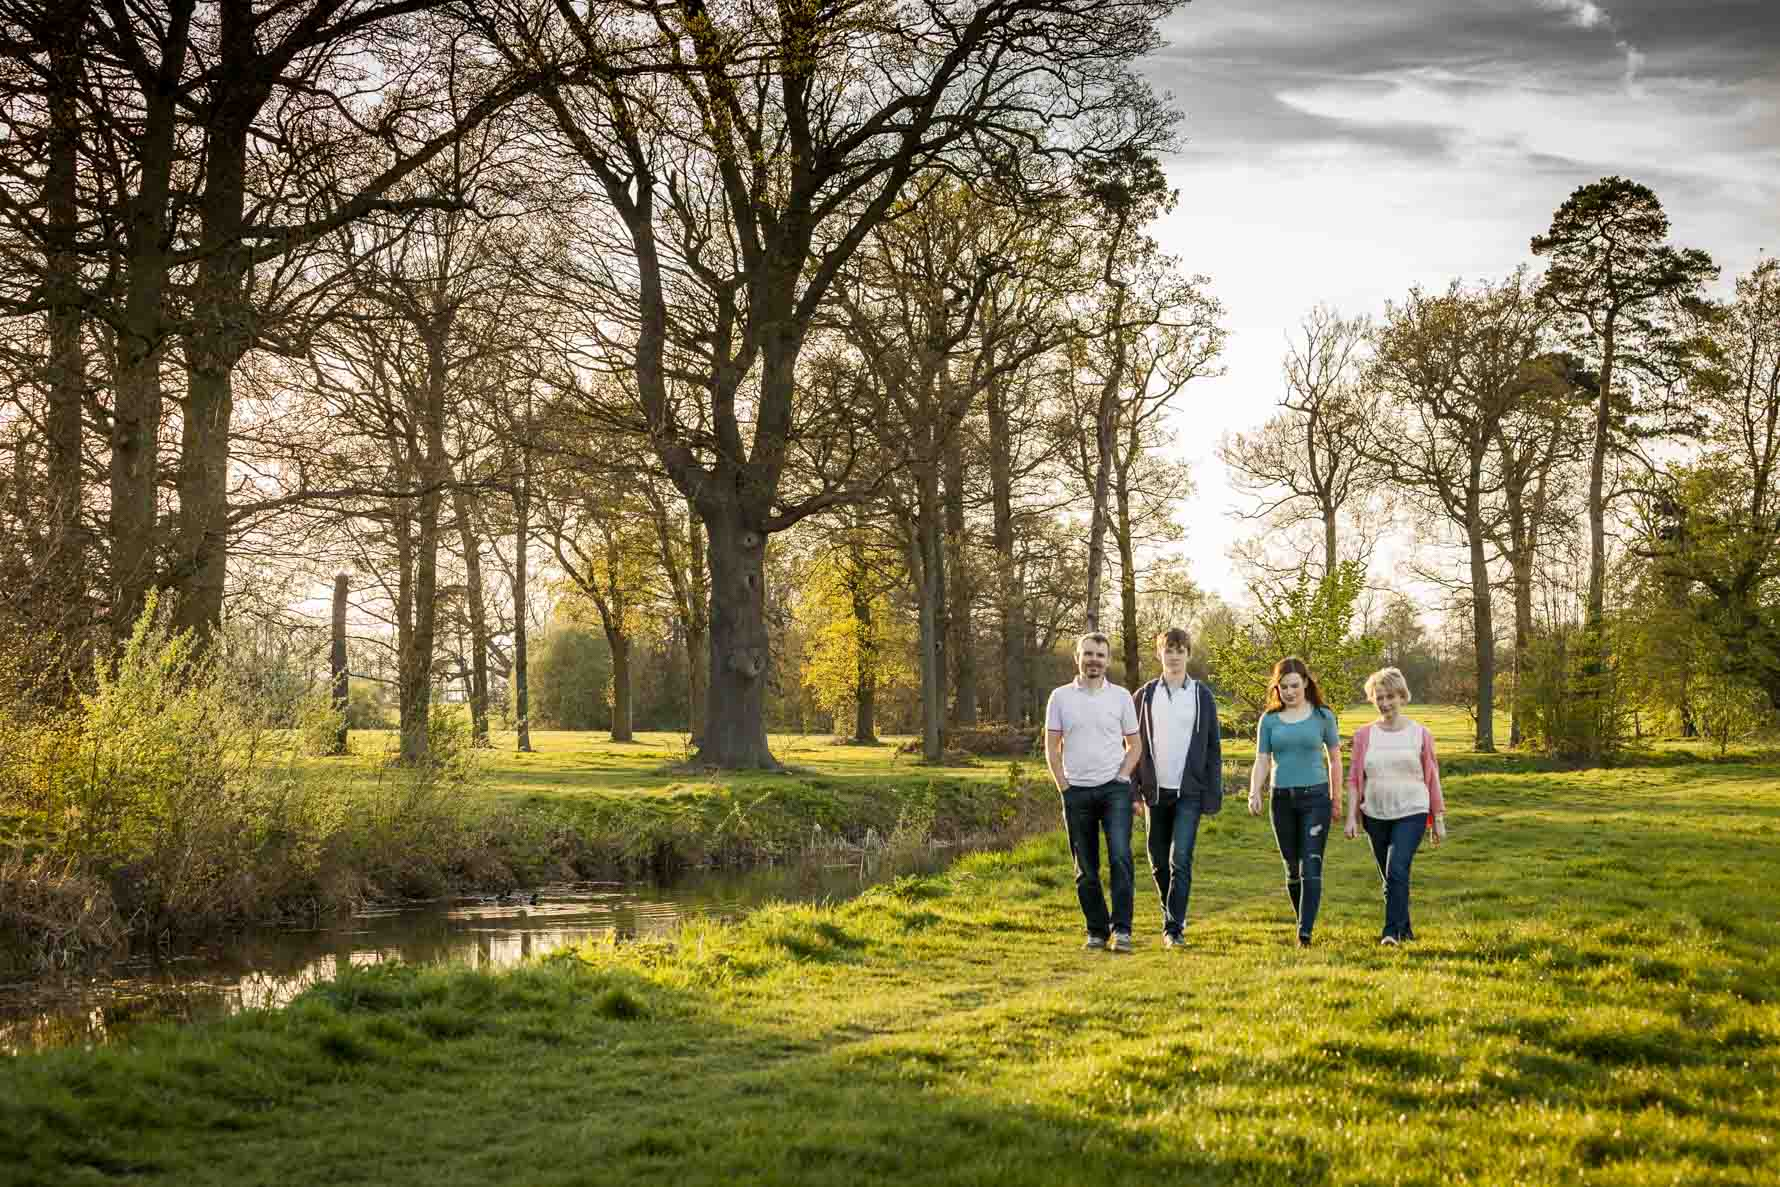 A family of four walk by a lake in the golden hour